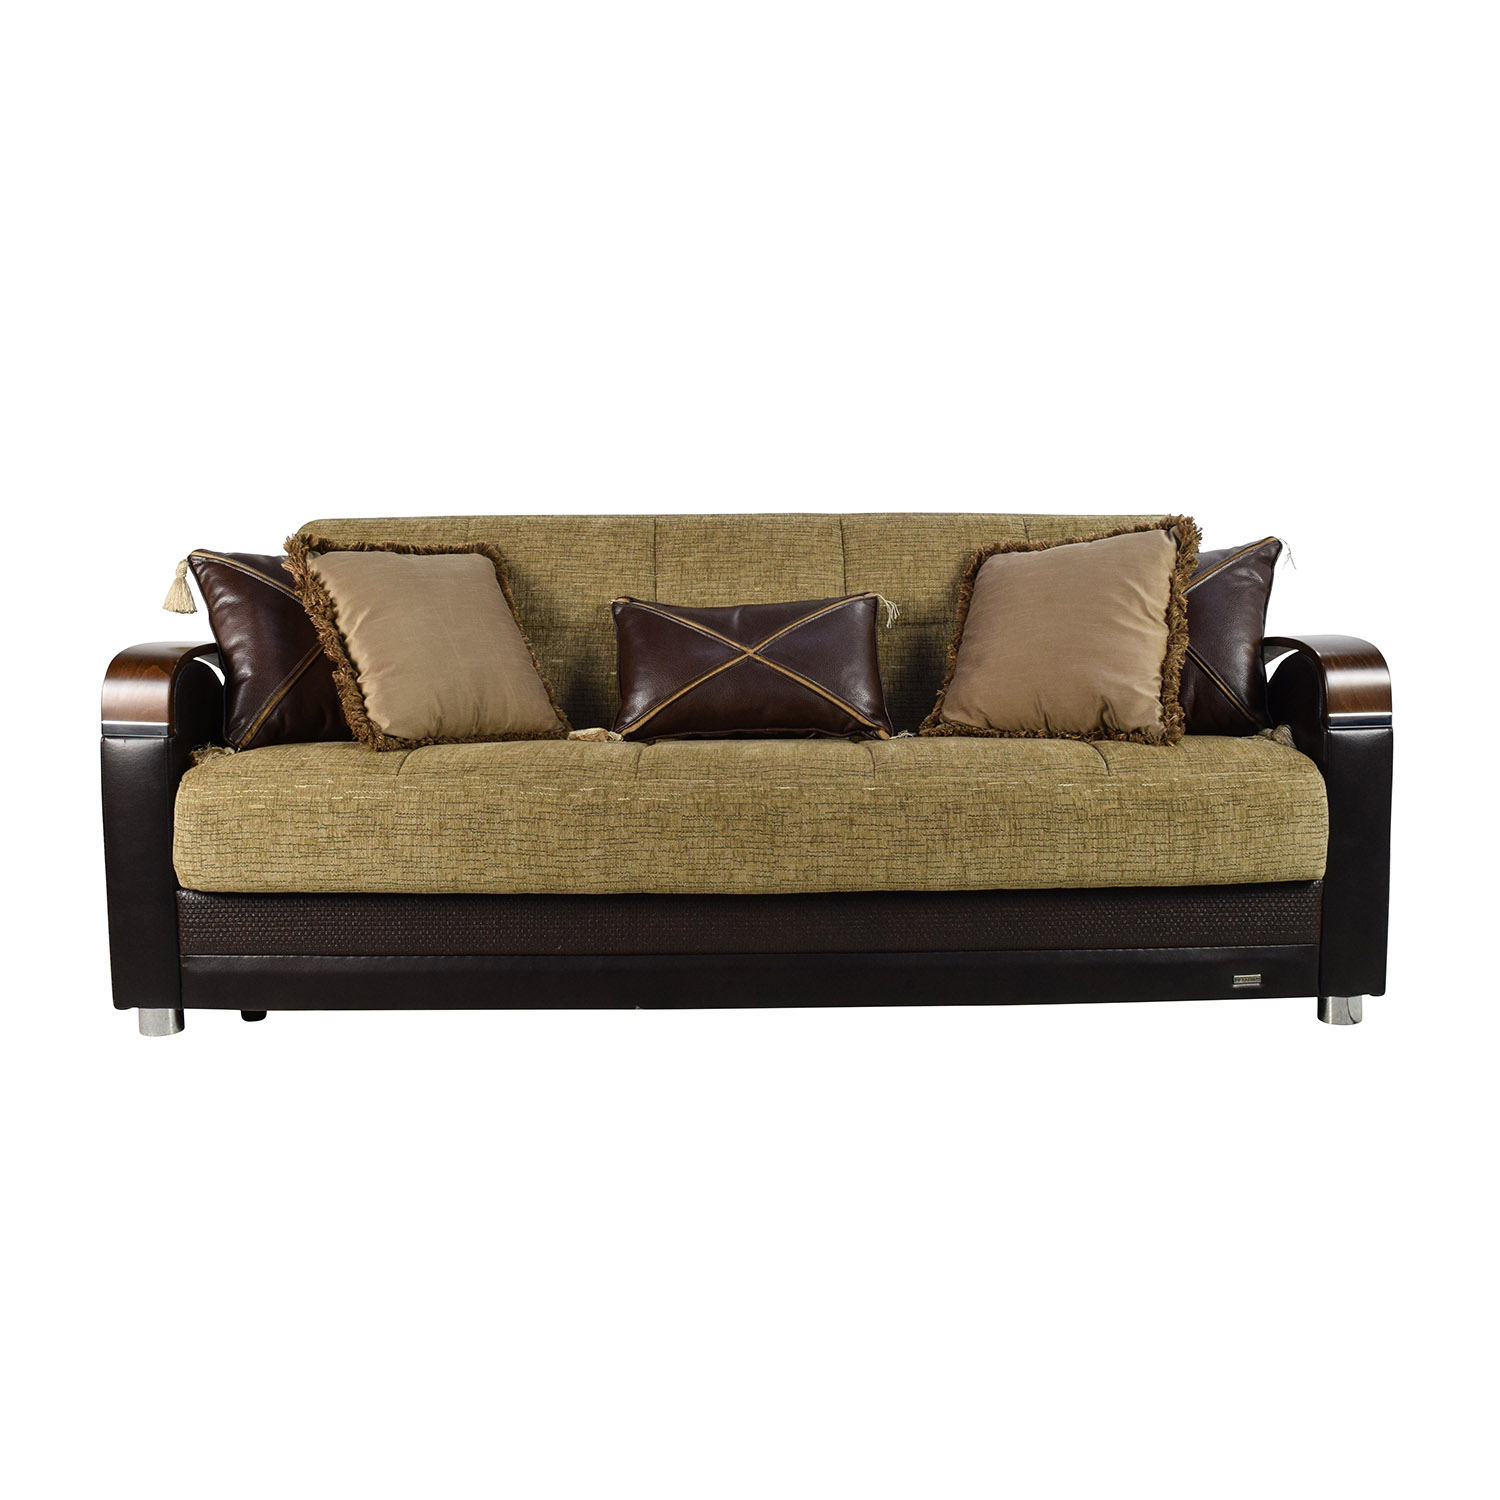 Bellona Luna Gold And Brown Sofa Sleeper With Pillows Clic Sofas